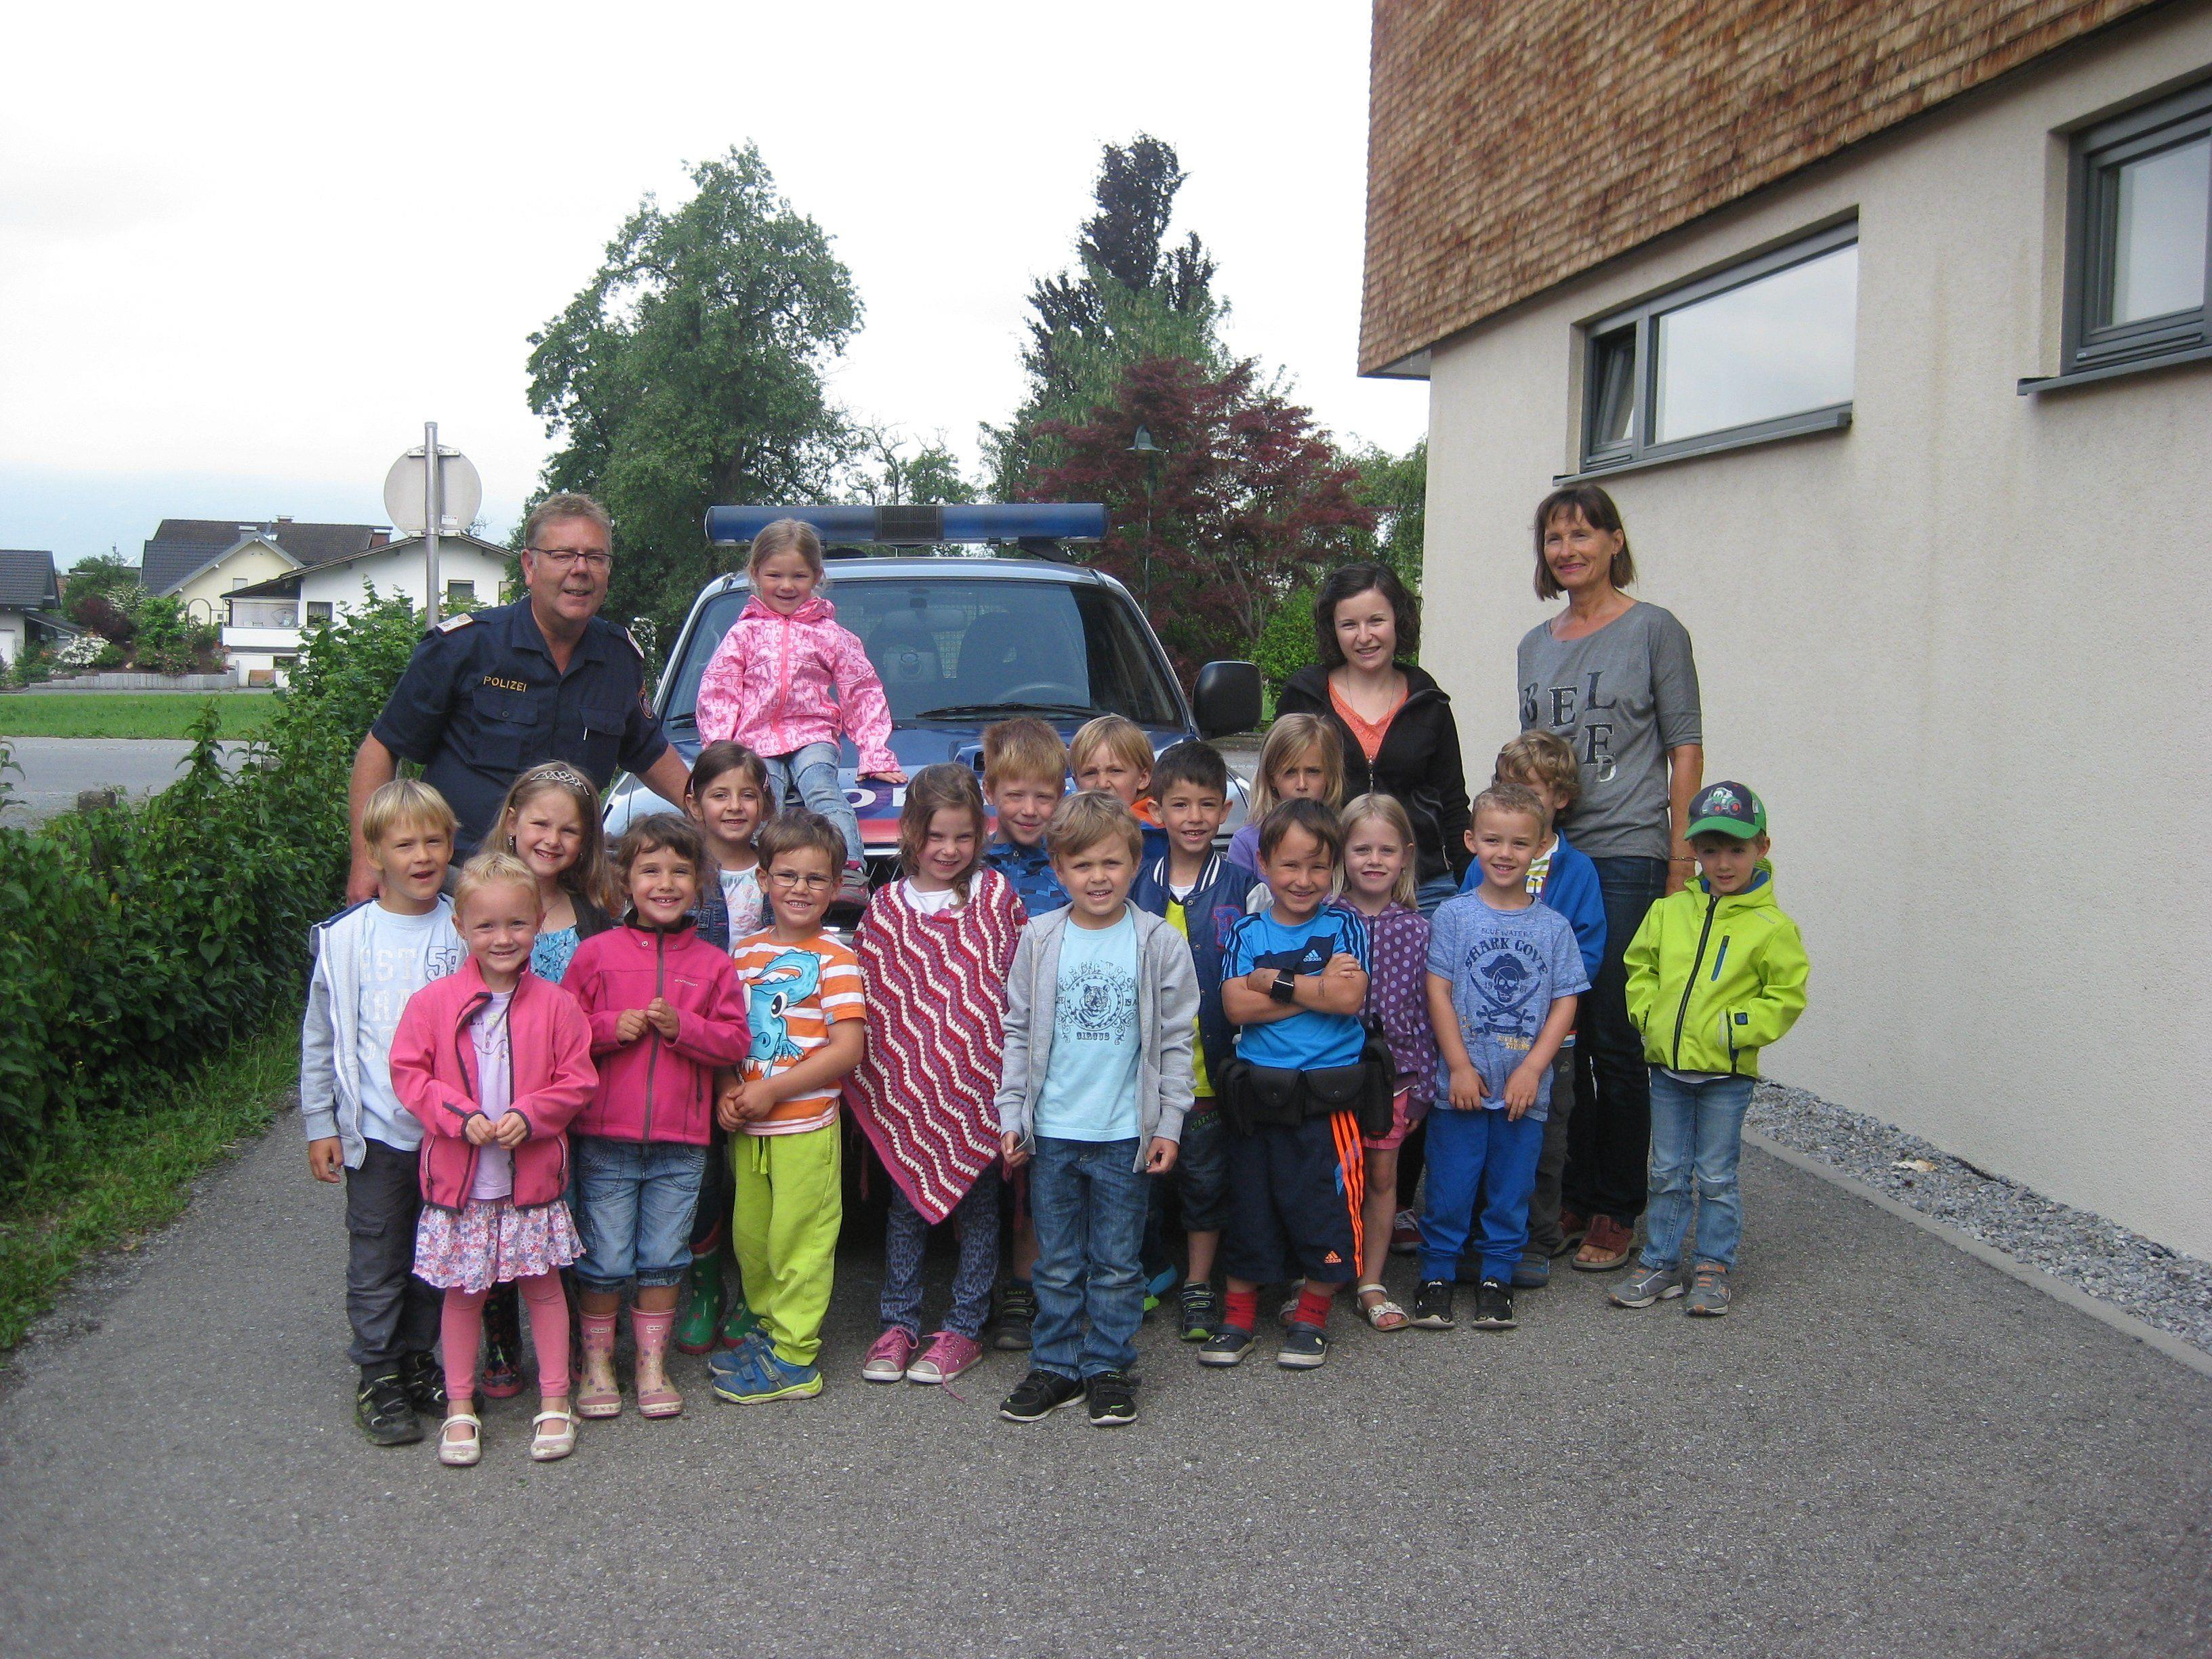 polizei zu besuch im kindergarten weiler vol at. Black Bedroom Furniture Sets. Home Design Ideas